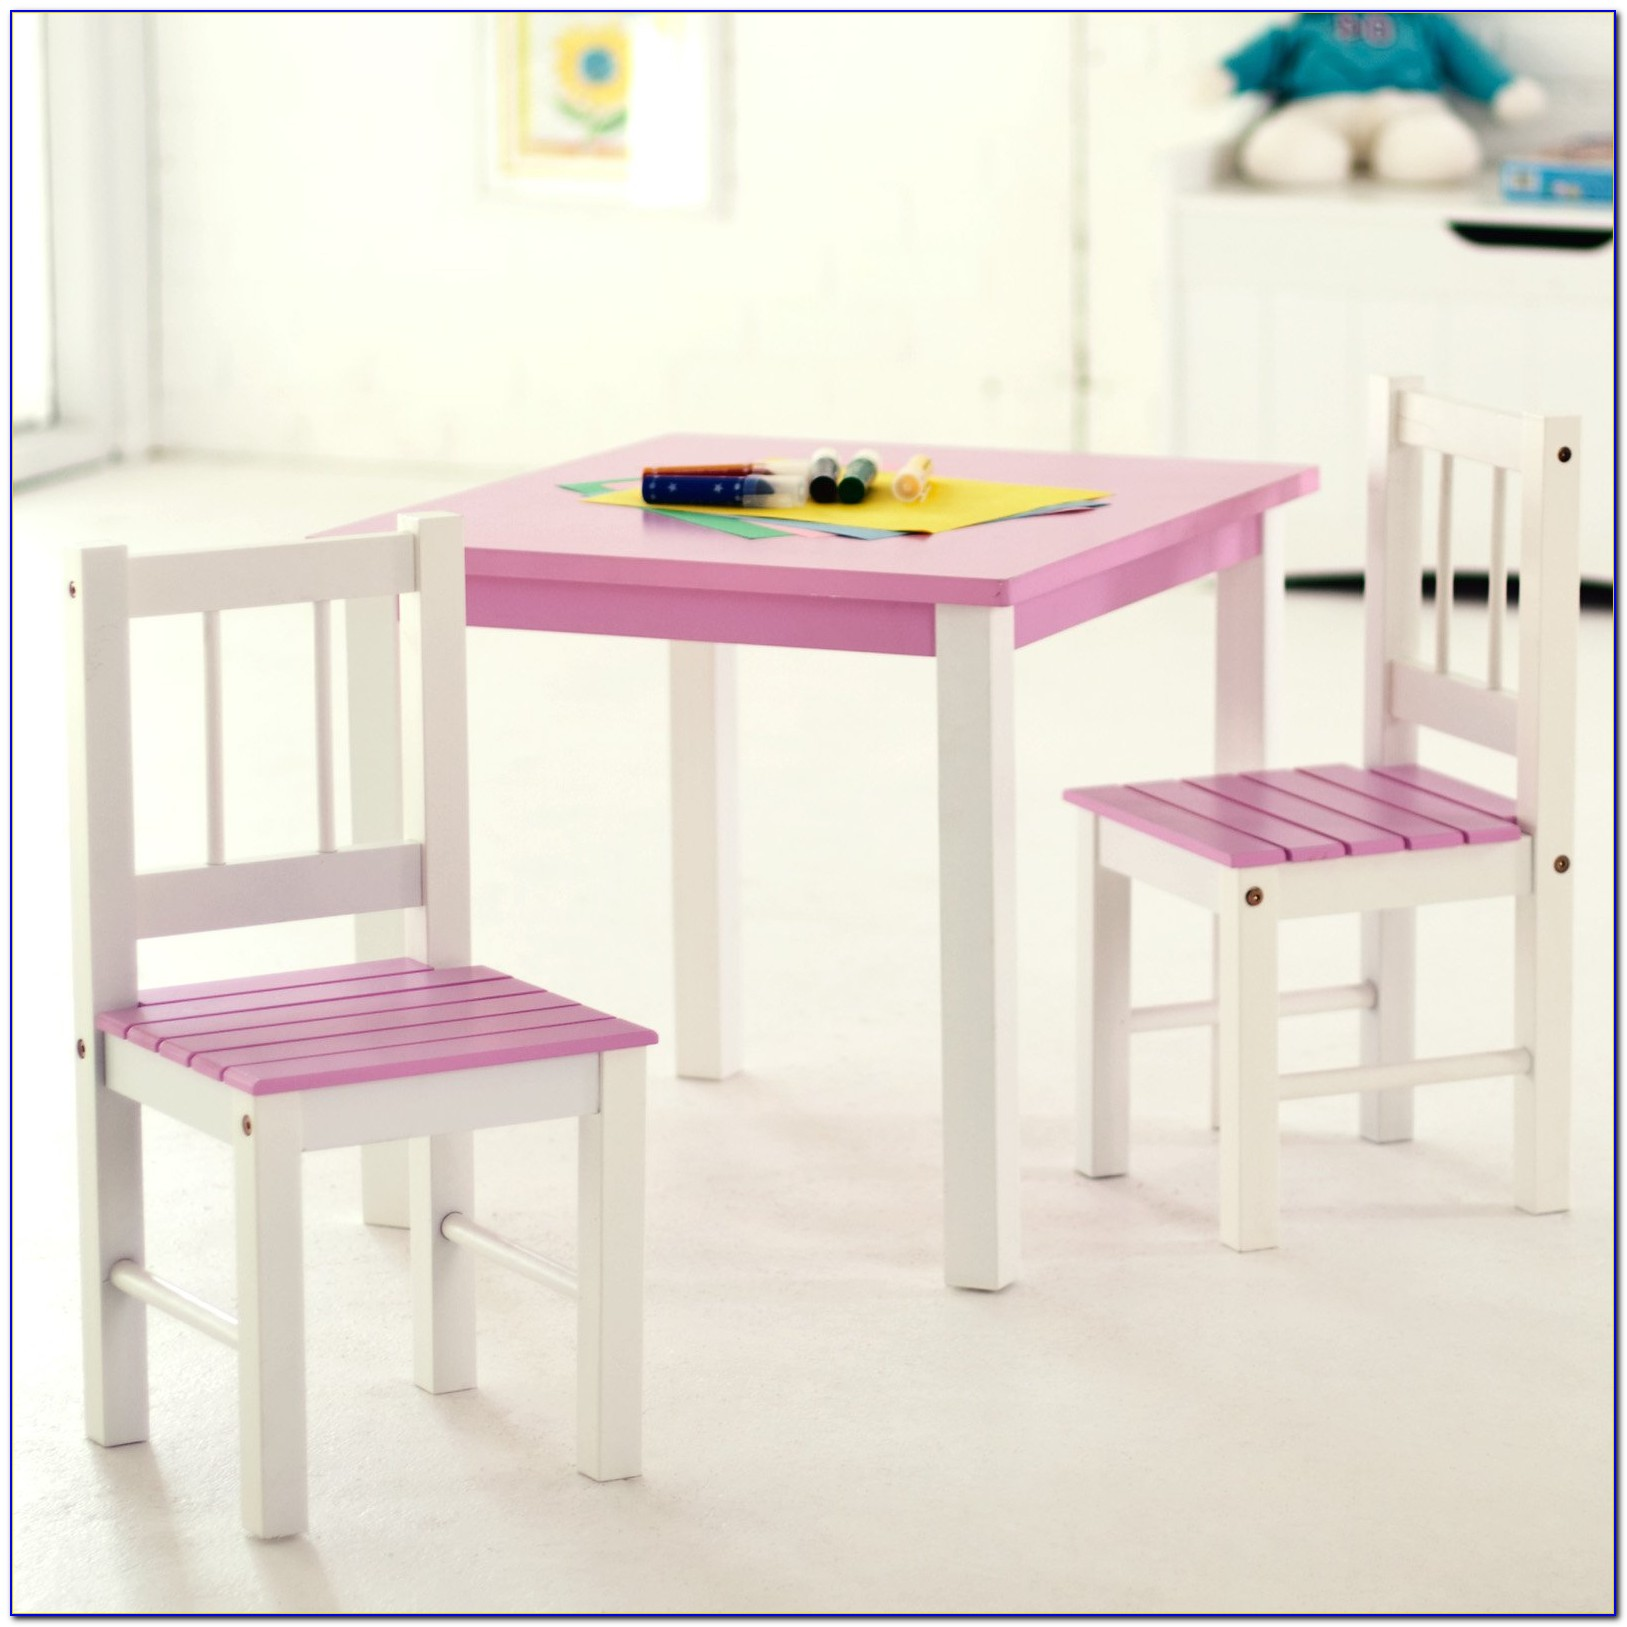 Toddler Play Table And Chairs Amazon